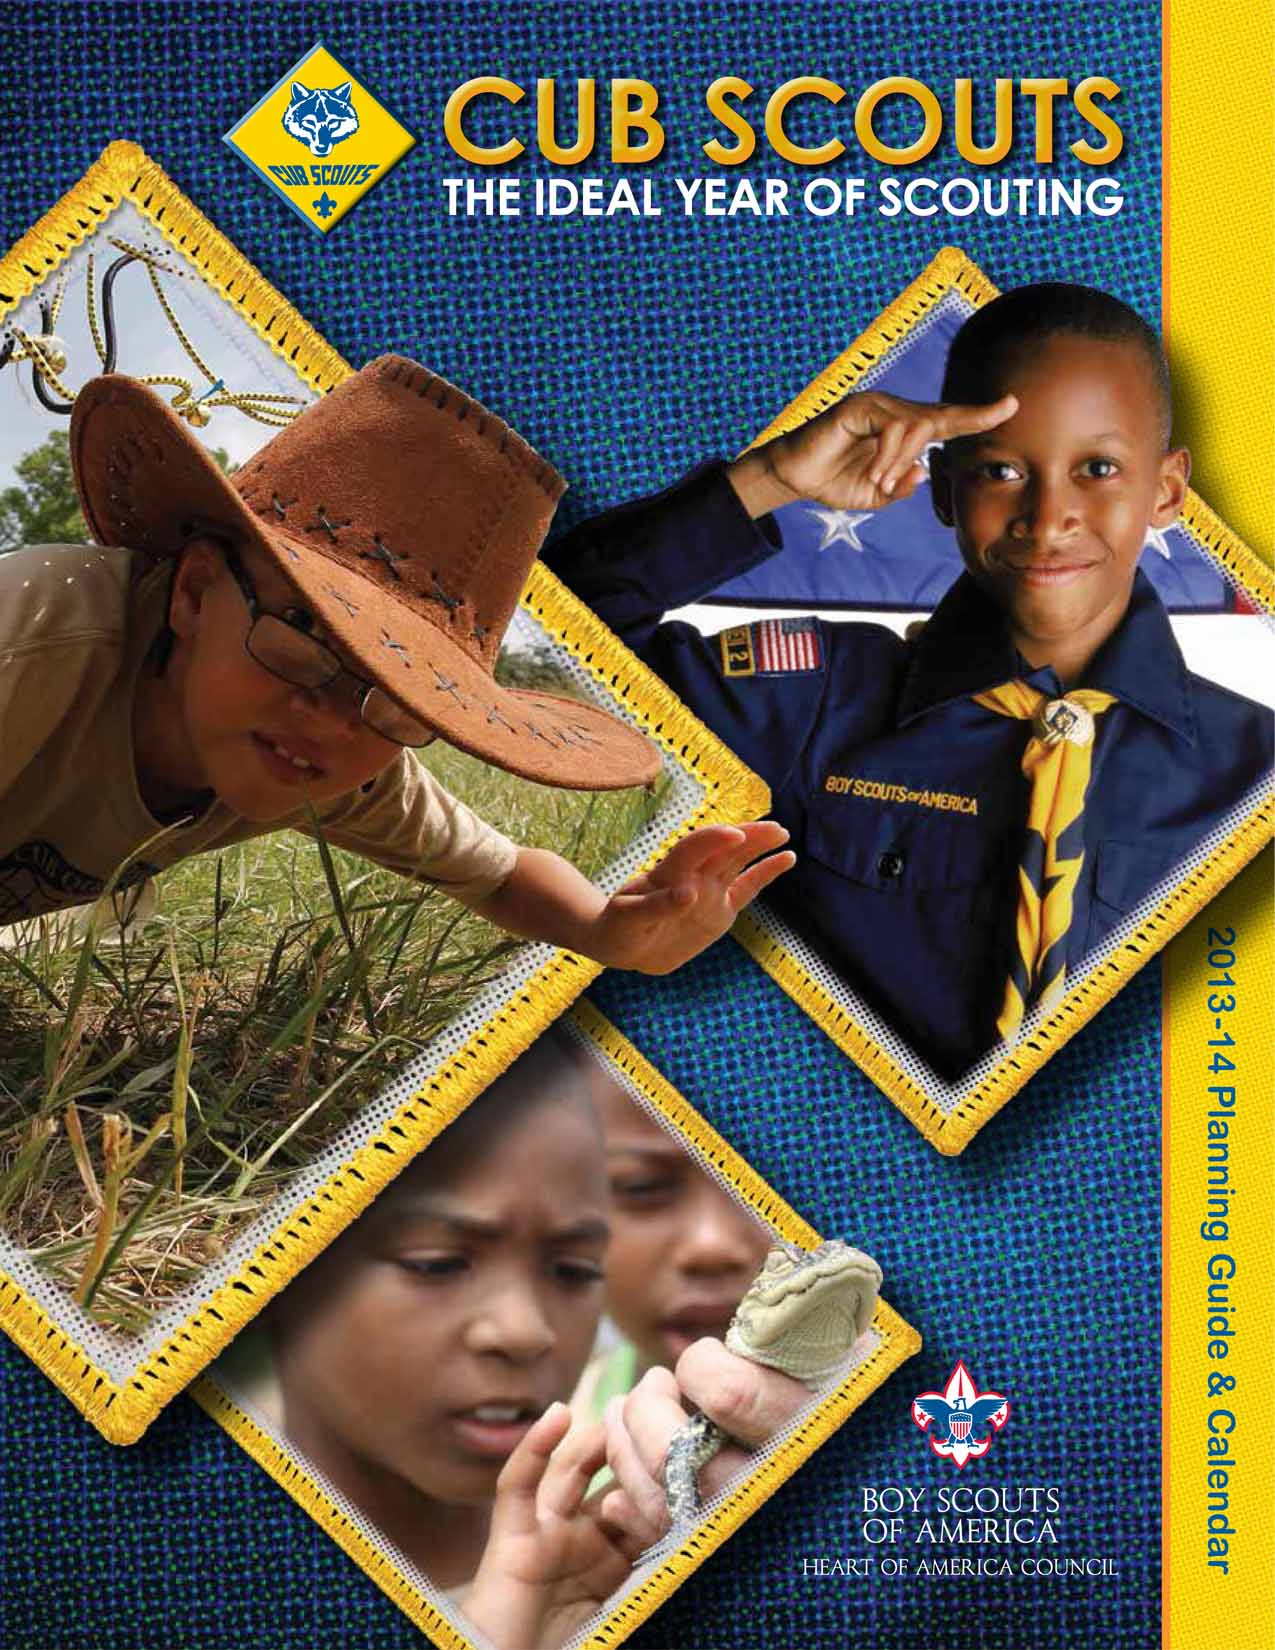 ideals of scouting The ideals of boy scouting are spelled out in the scout oath, the scout law, the scout motto, and the scout slogan the boy scout measures himself against these ideals and continually tries to improve.